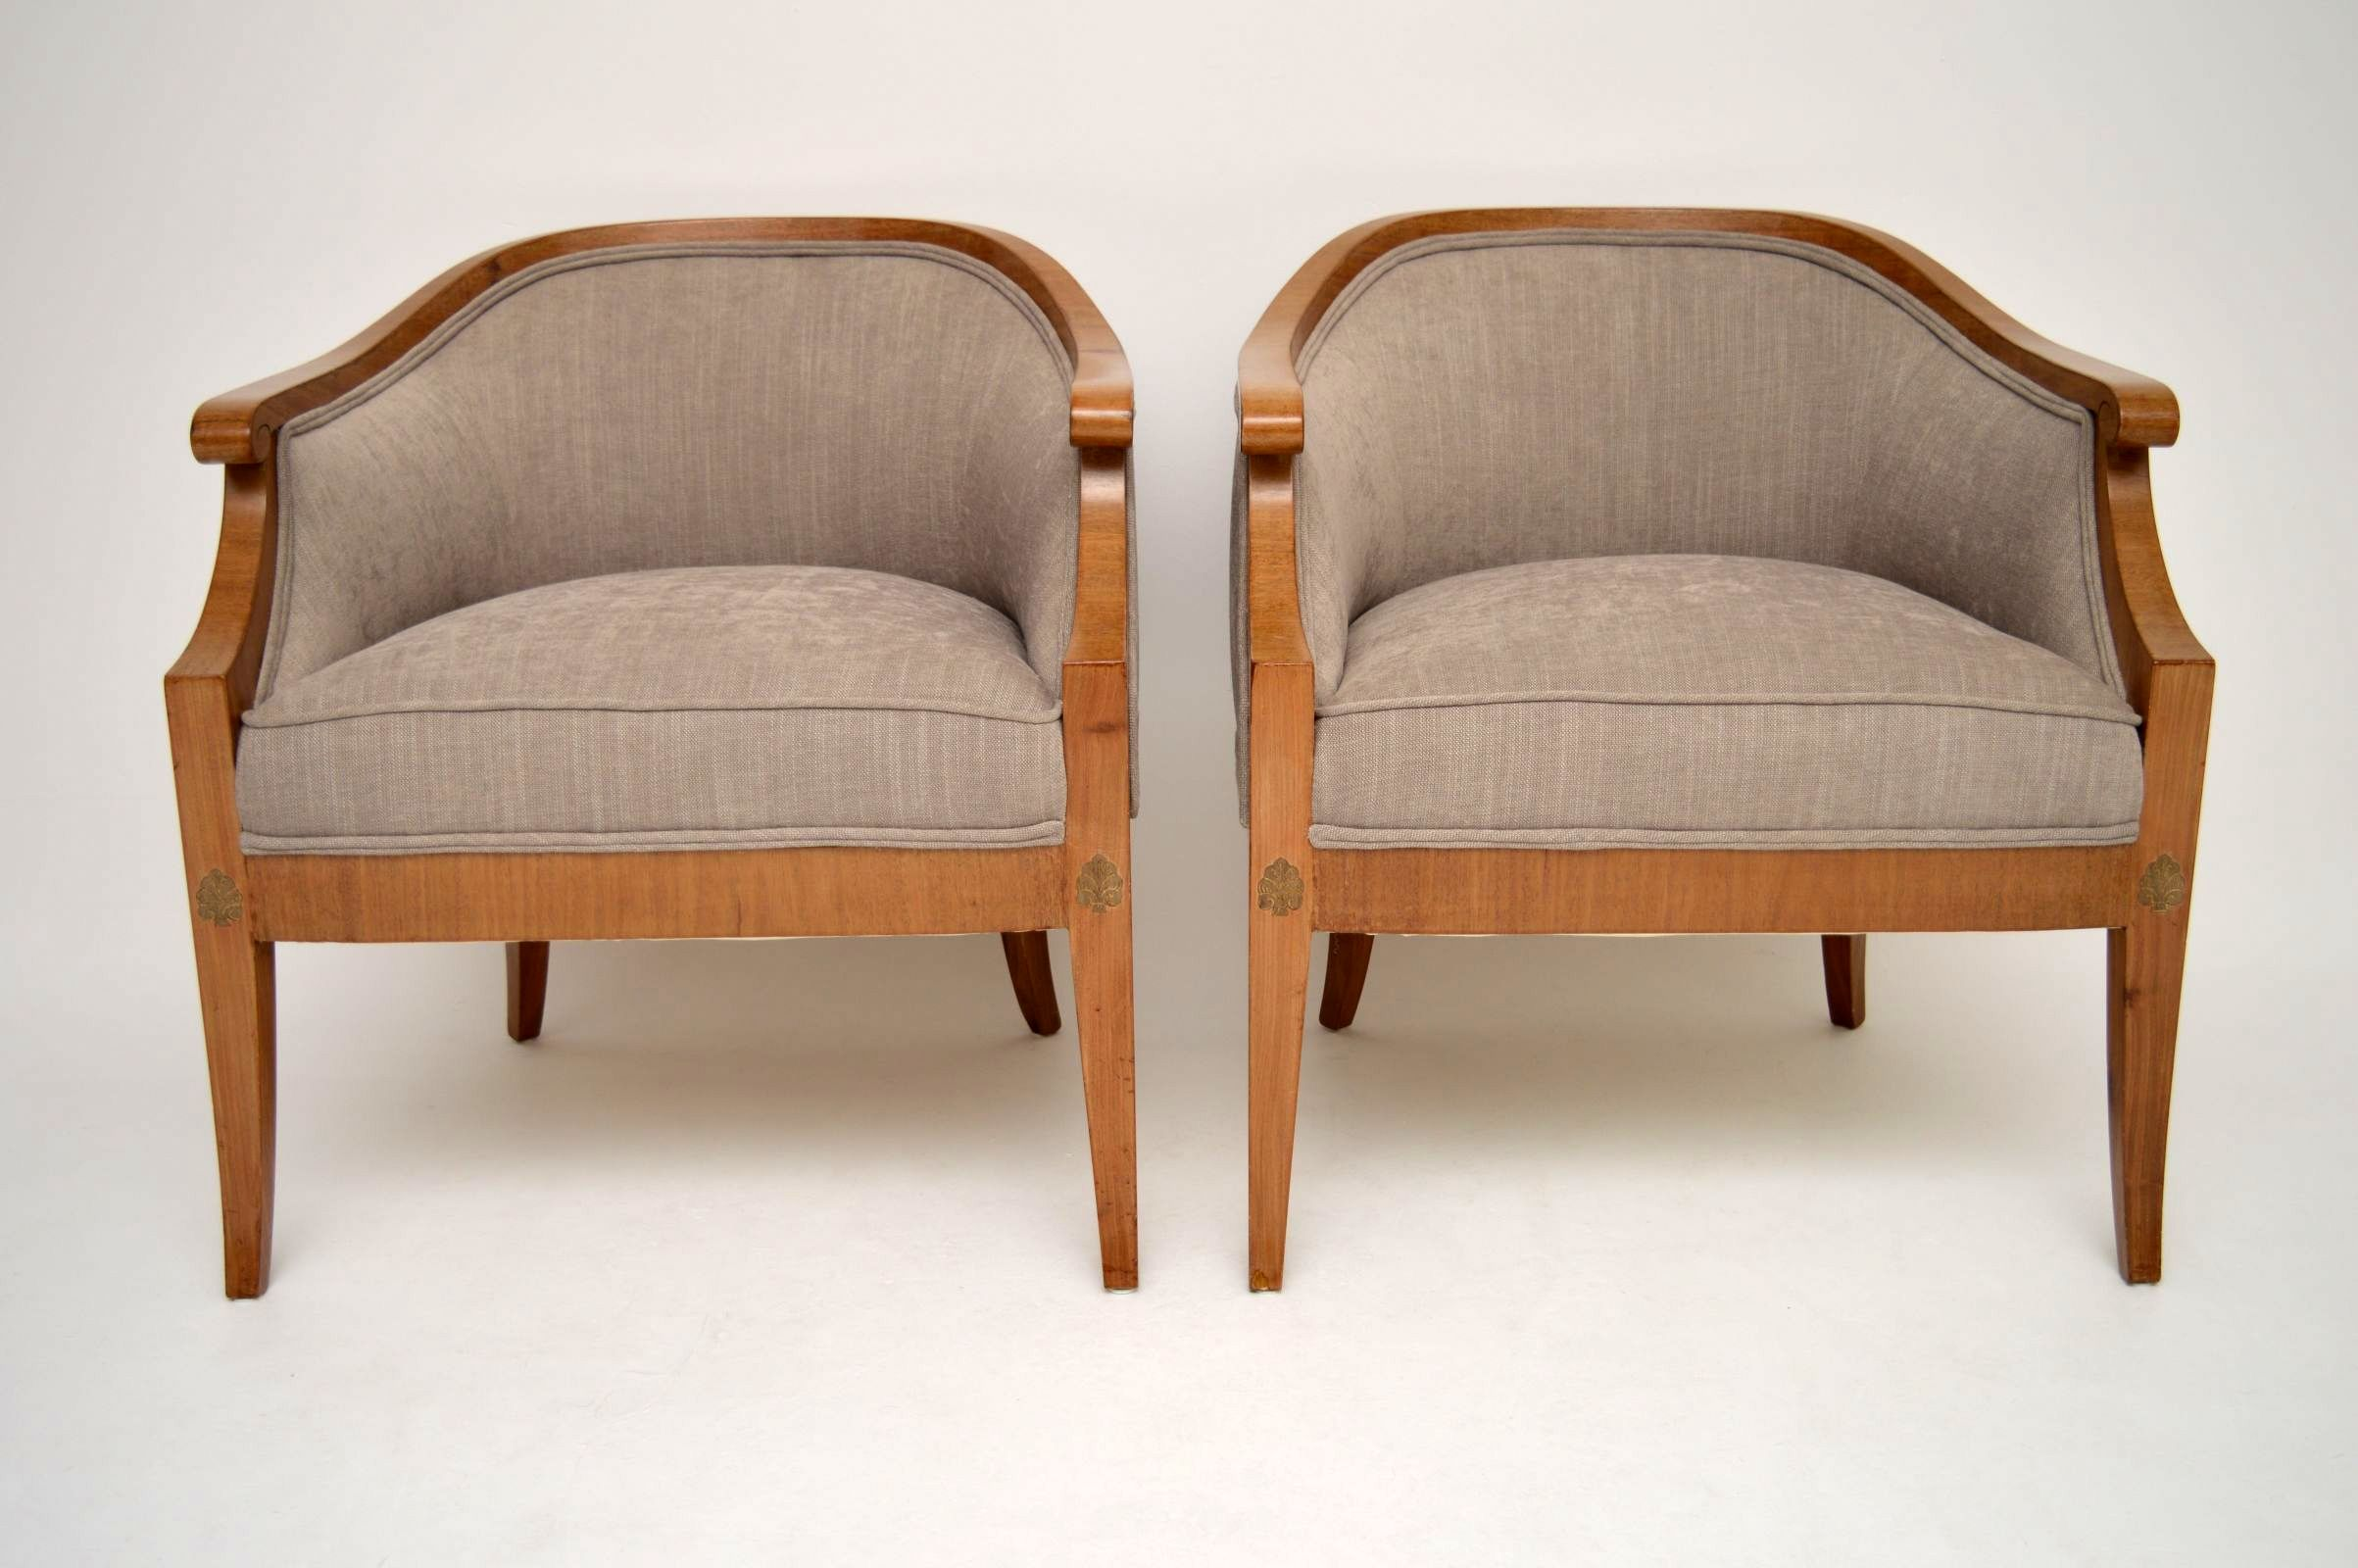 Elegant pair of antique swedish satinbirch armchairs interior boutiques antiques for sale - Vintage pieces of furniture old times elegance ...